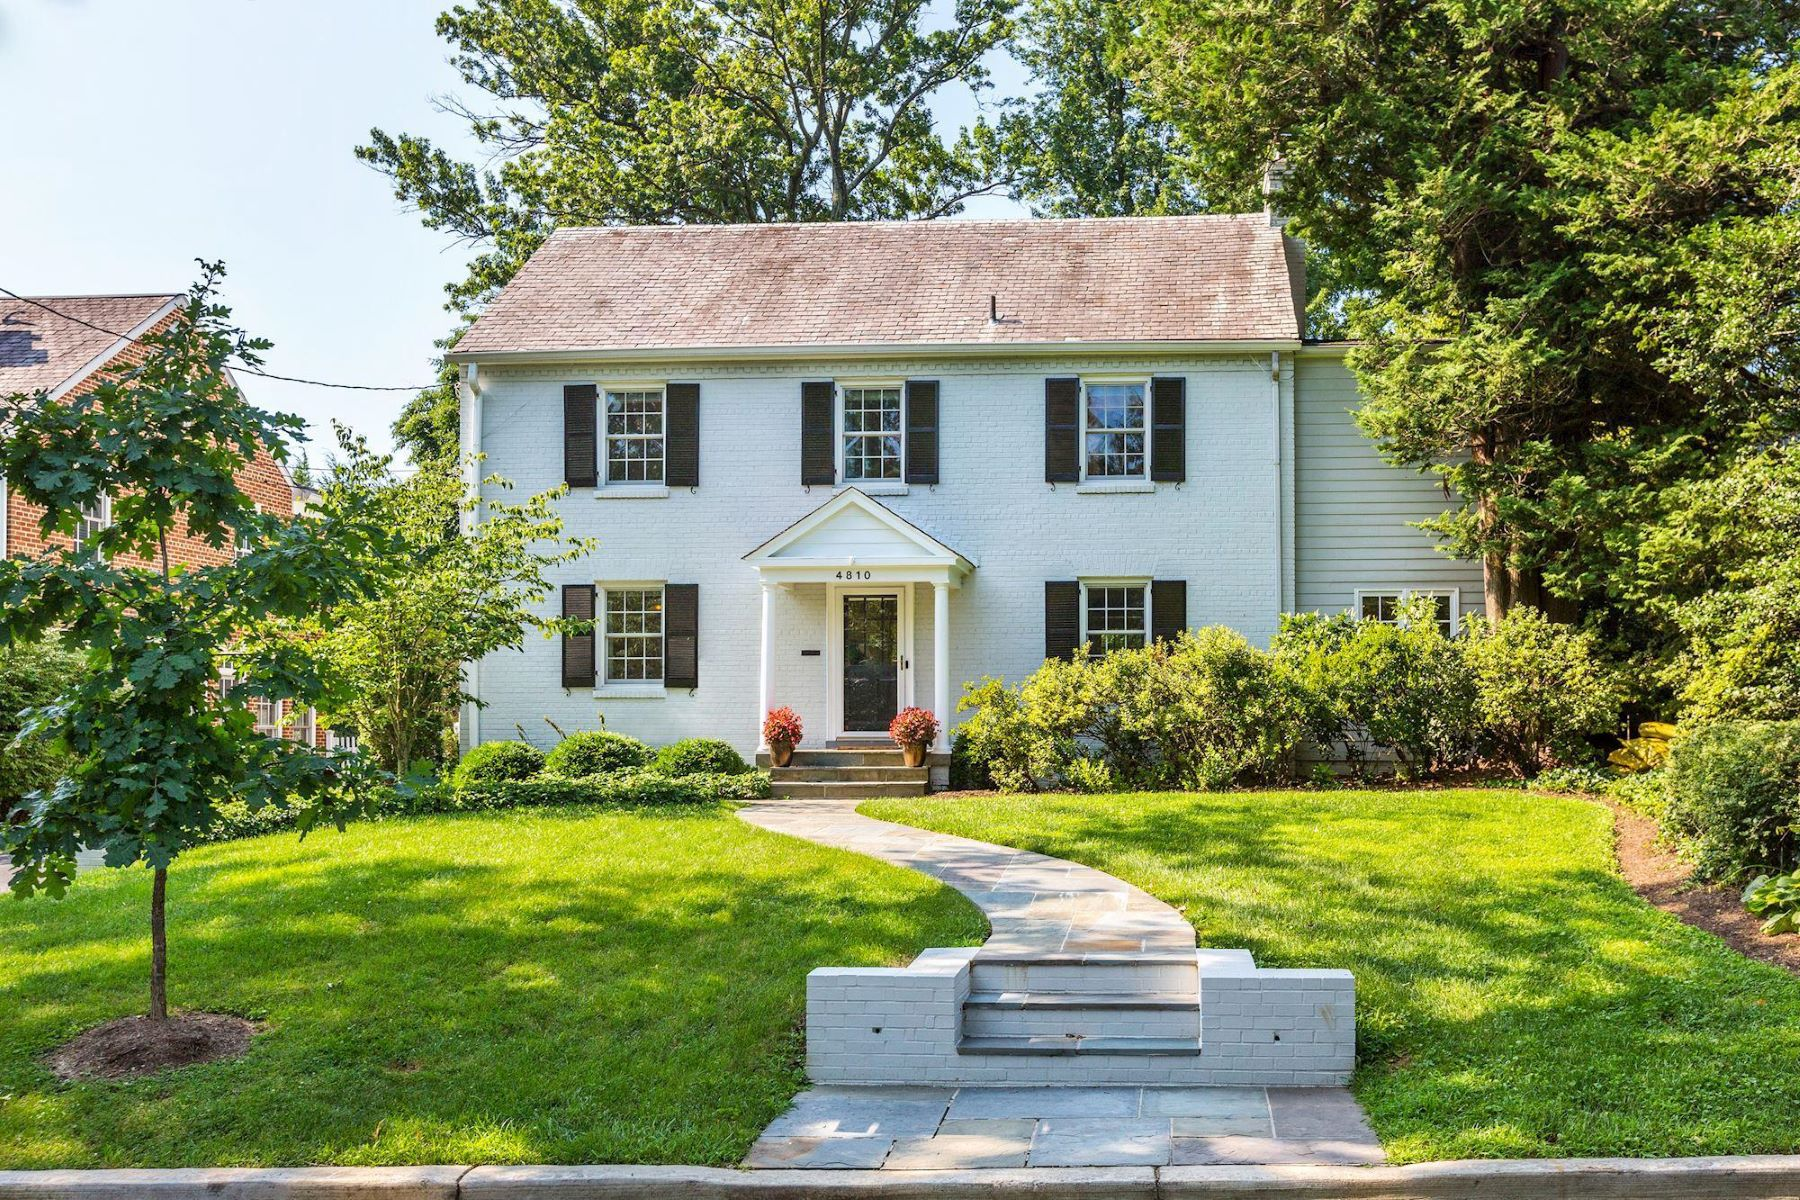 Single Family Homes for Active at 4810 Essex Ave Chevy Chase, Maryland 20815 United States